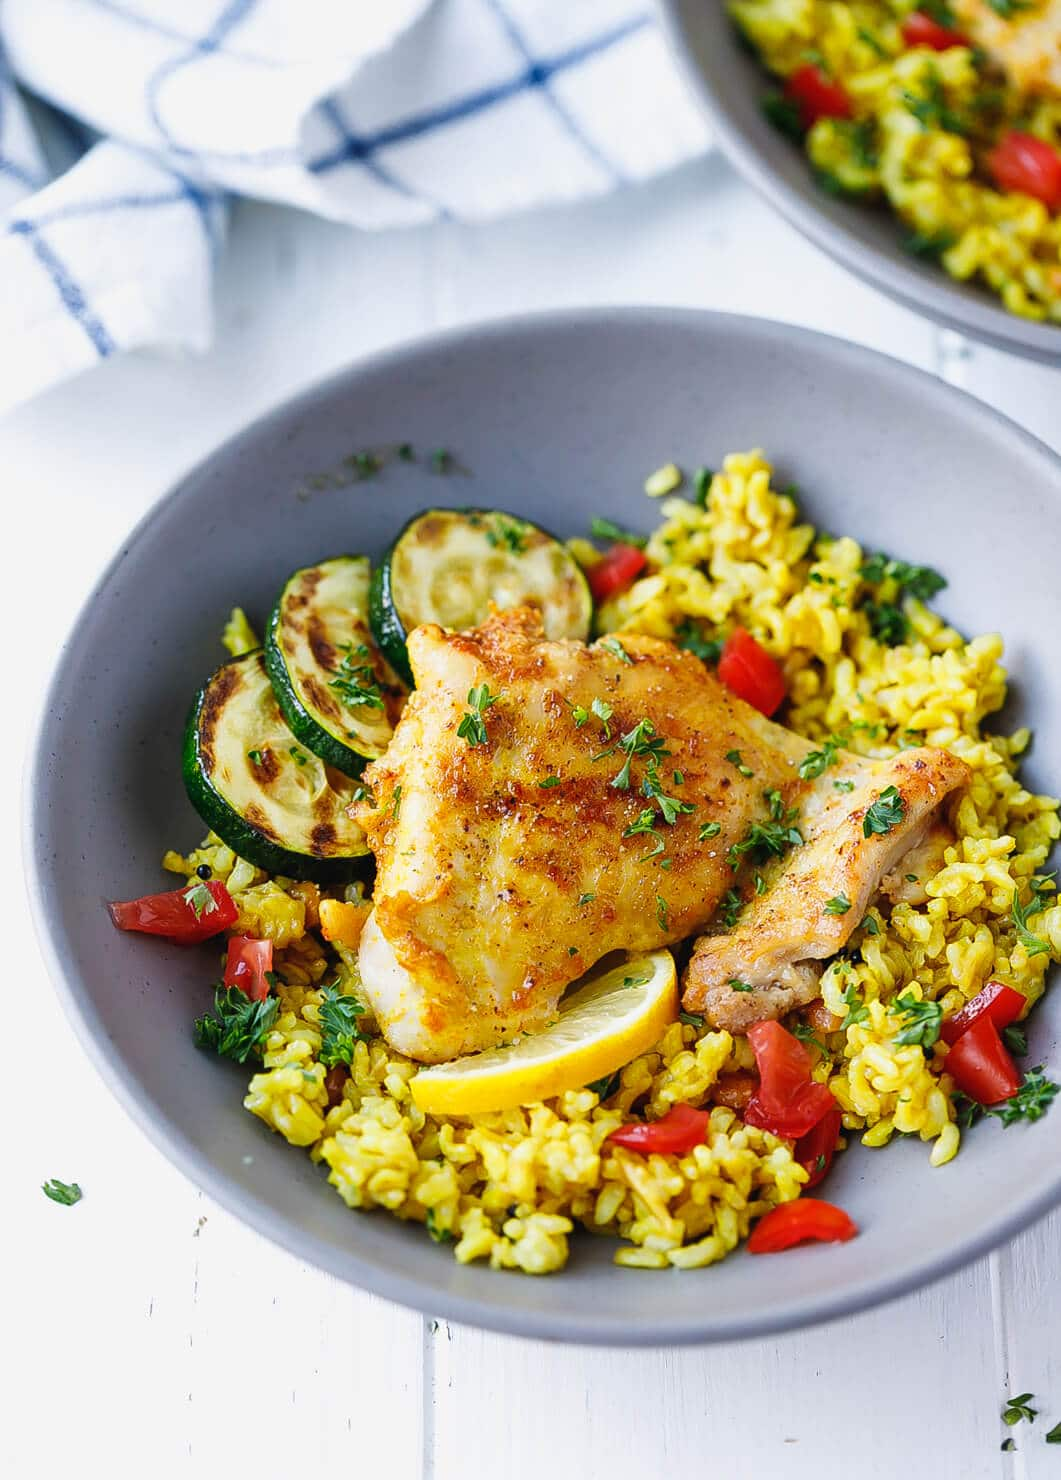 Turmeric Chicken And Rice - Cooking Lsl-9827